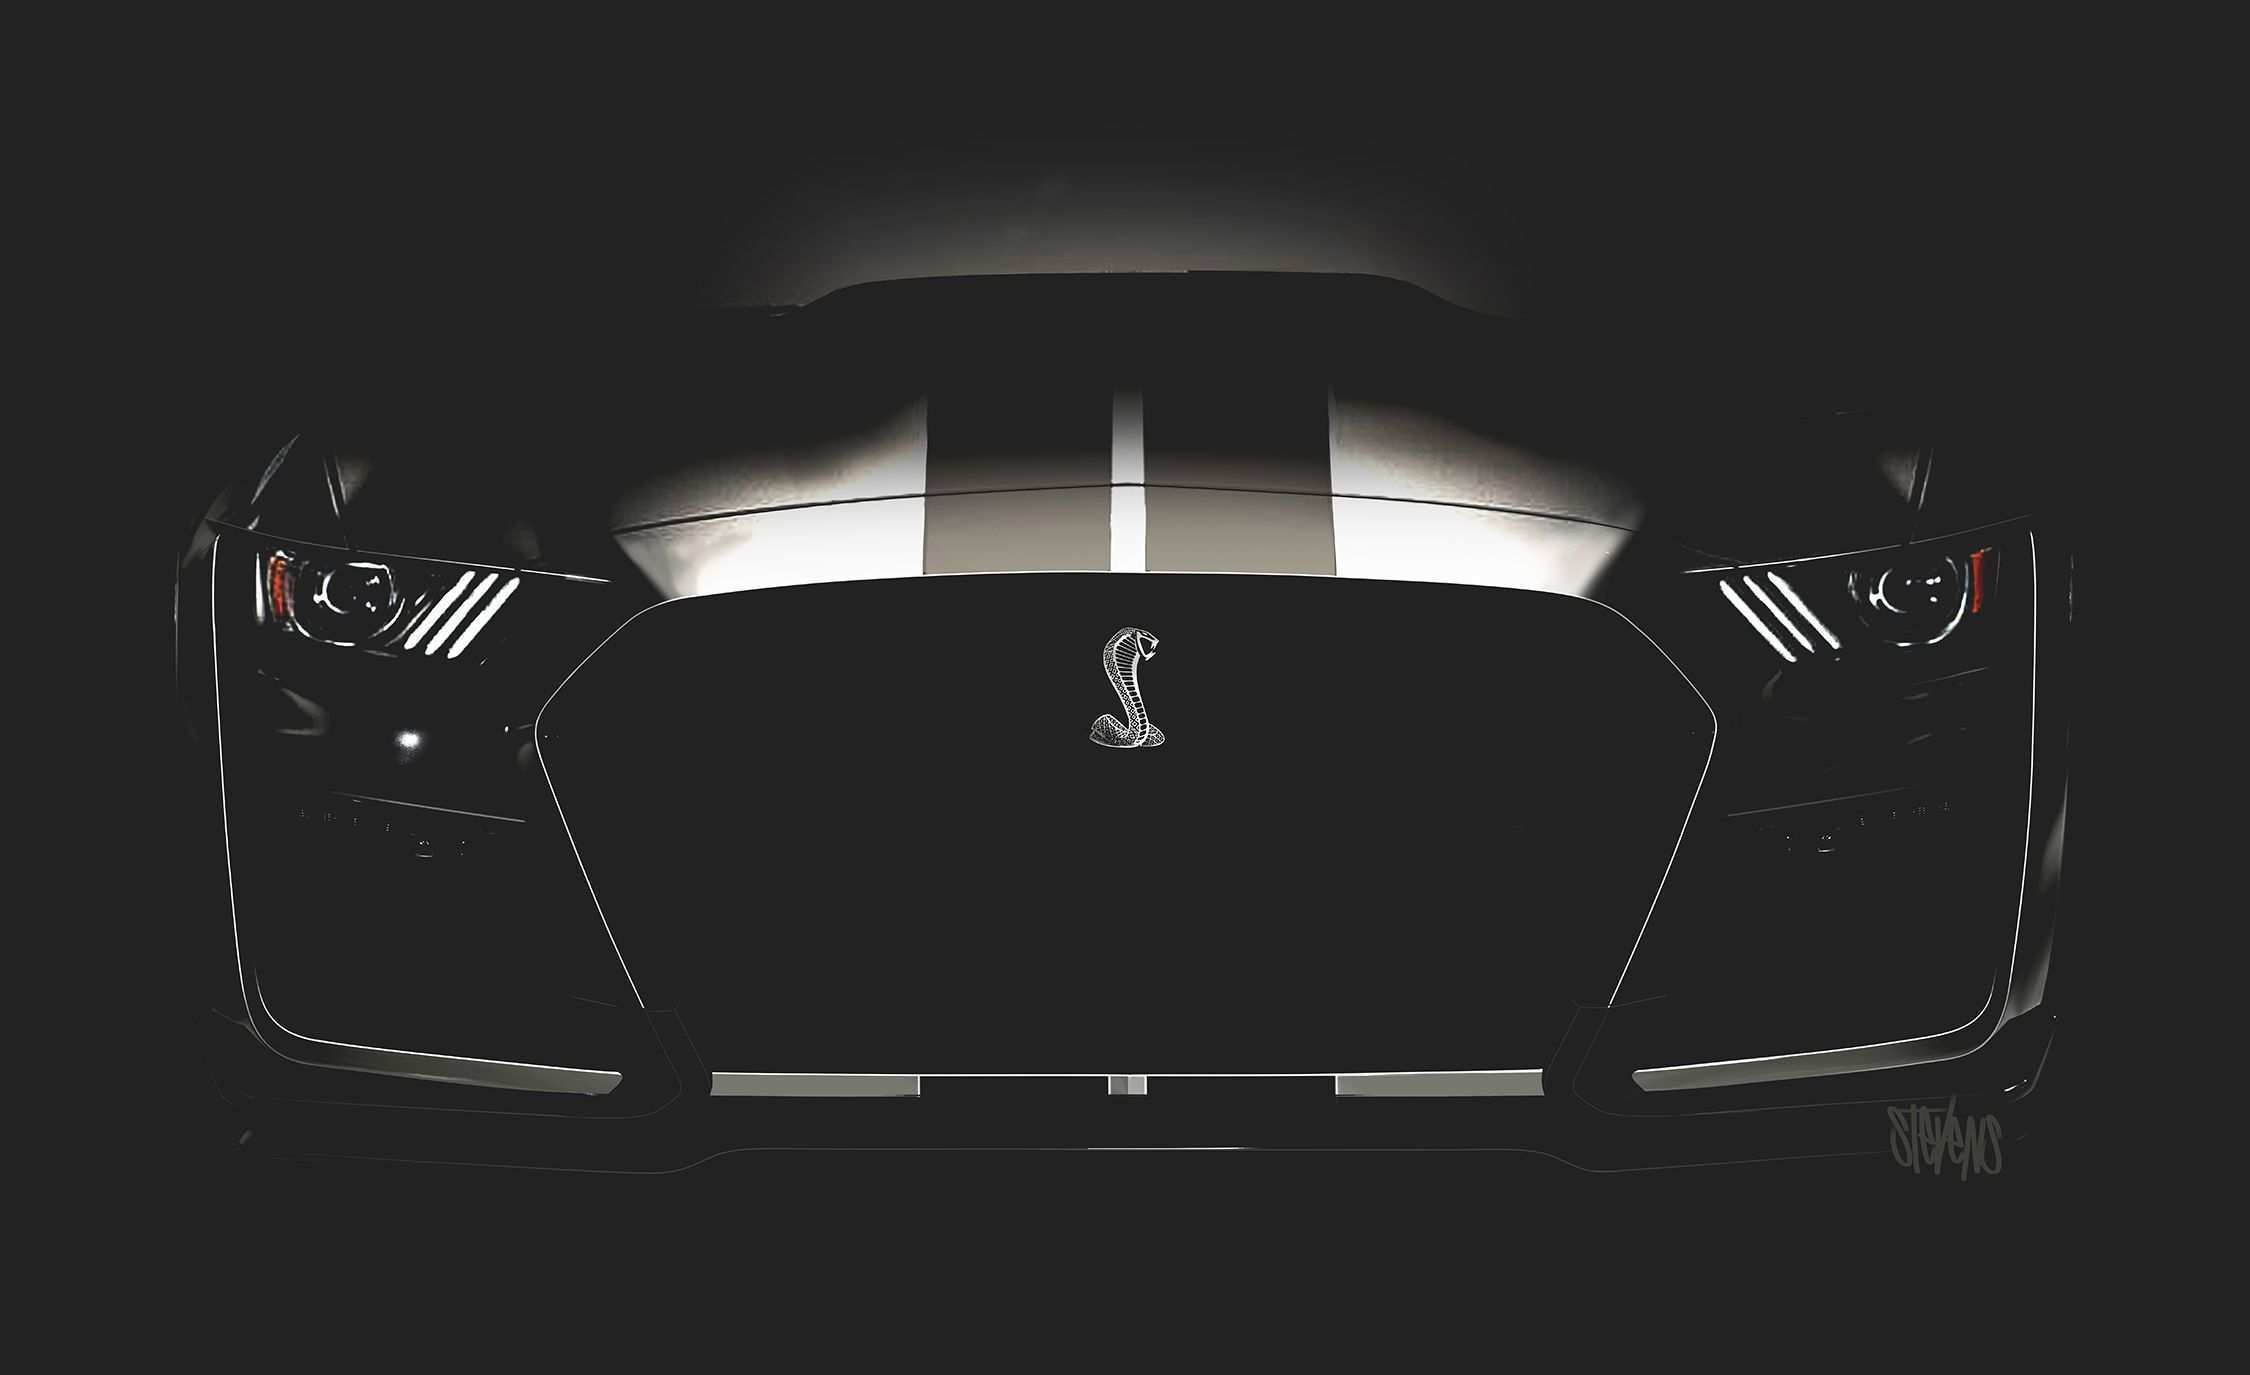 39 Gallery of 2020 Ford Shelby Gt500 Price Price and Review with 2020 Ford Shelby Gt500 Price